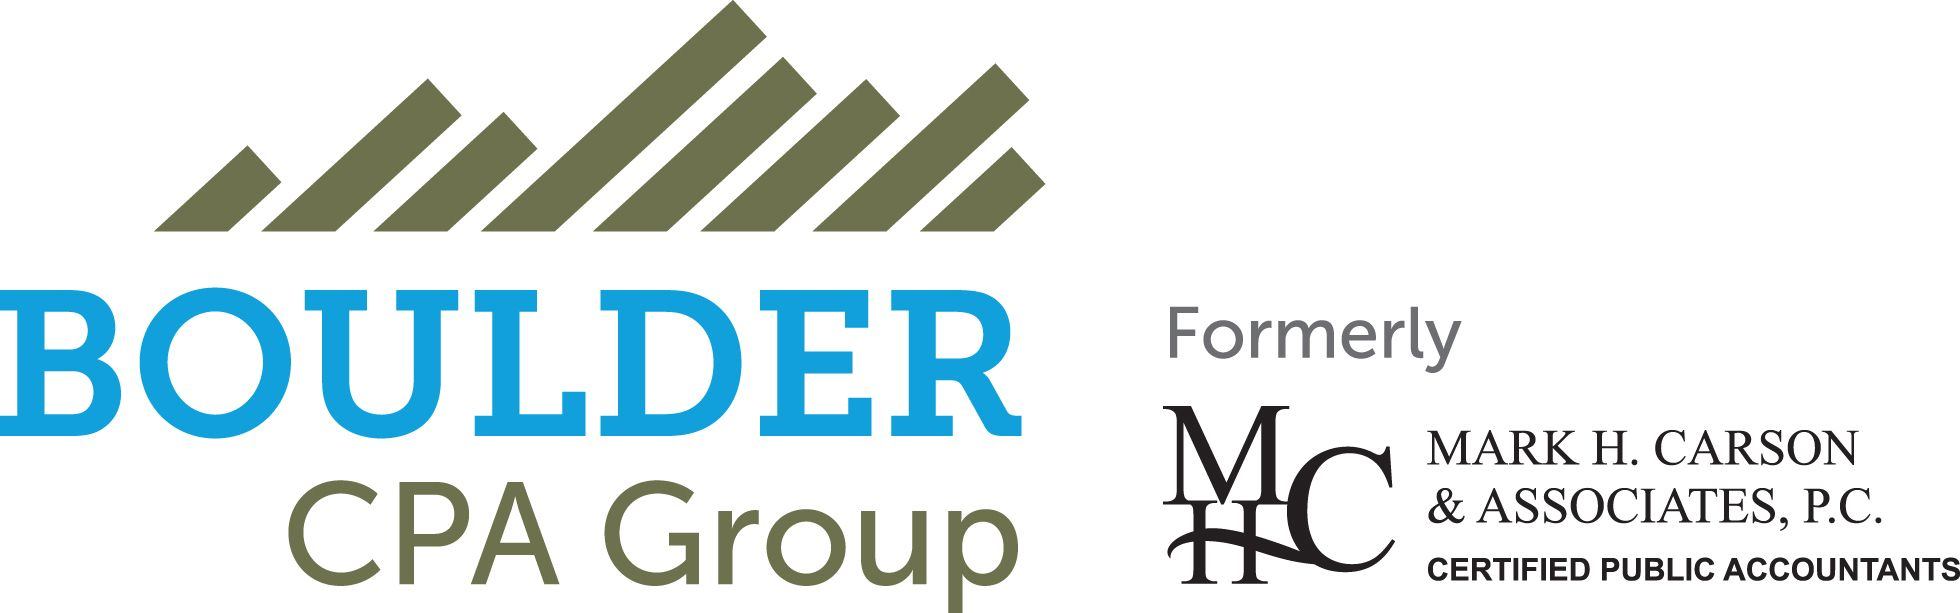 Boulder CPA Group logo - Links to website